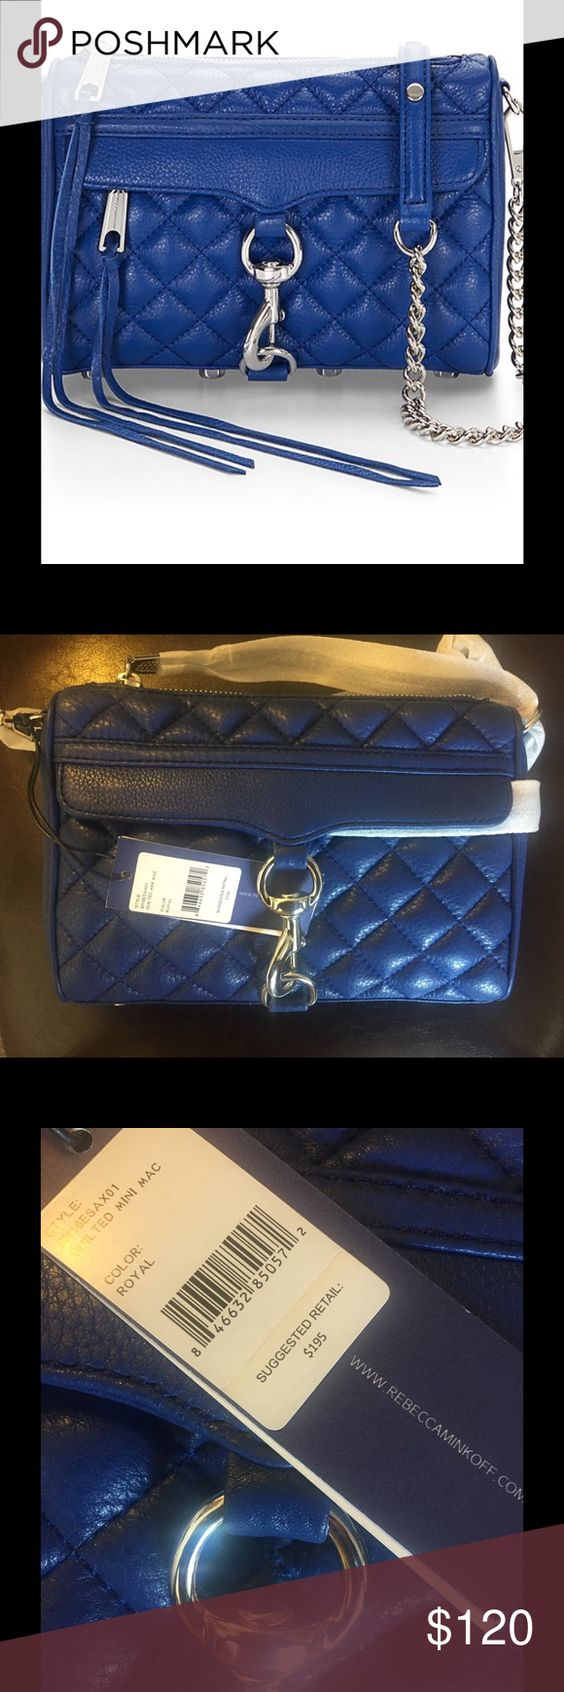 Rebecca Minkoff Quilted Mini Mac NWT Rebecca Minkoff is beloved by all trendsetters get this bag at a fraction of the price- new with tags and dust bag Rebecca Minkoff Bags Crossbody Bags